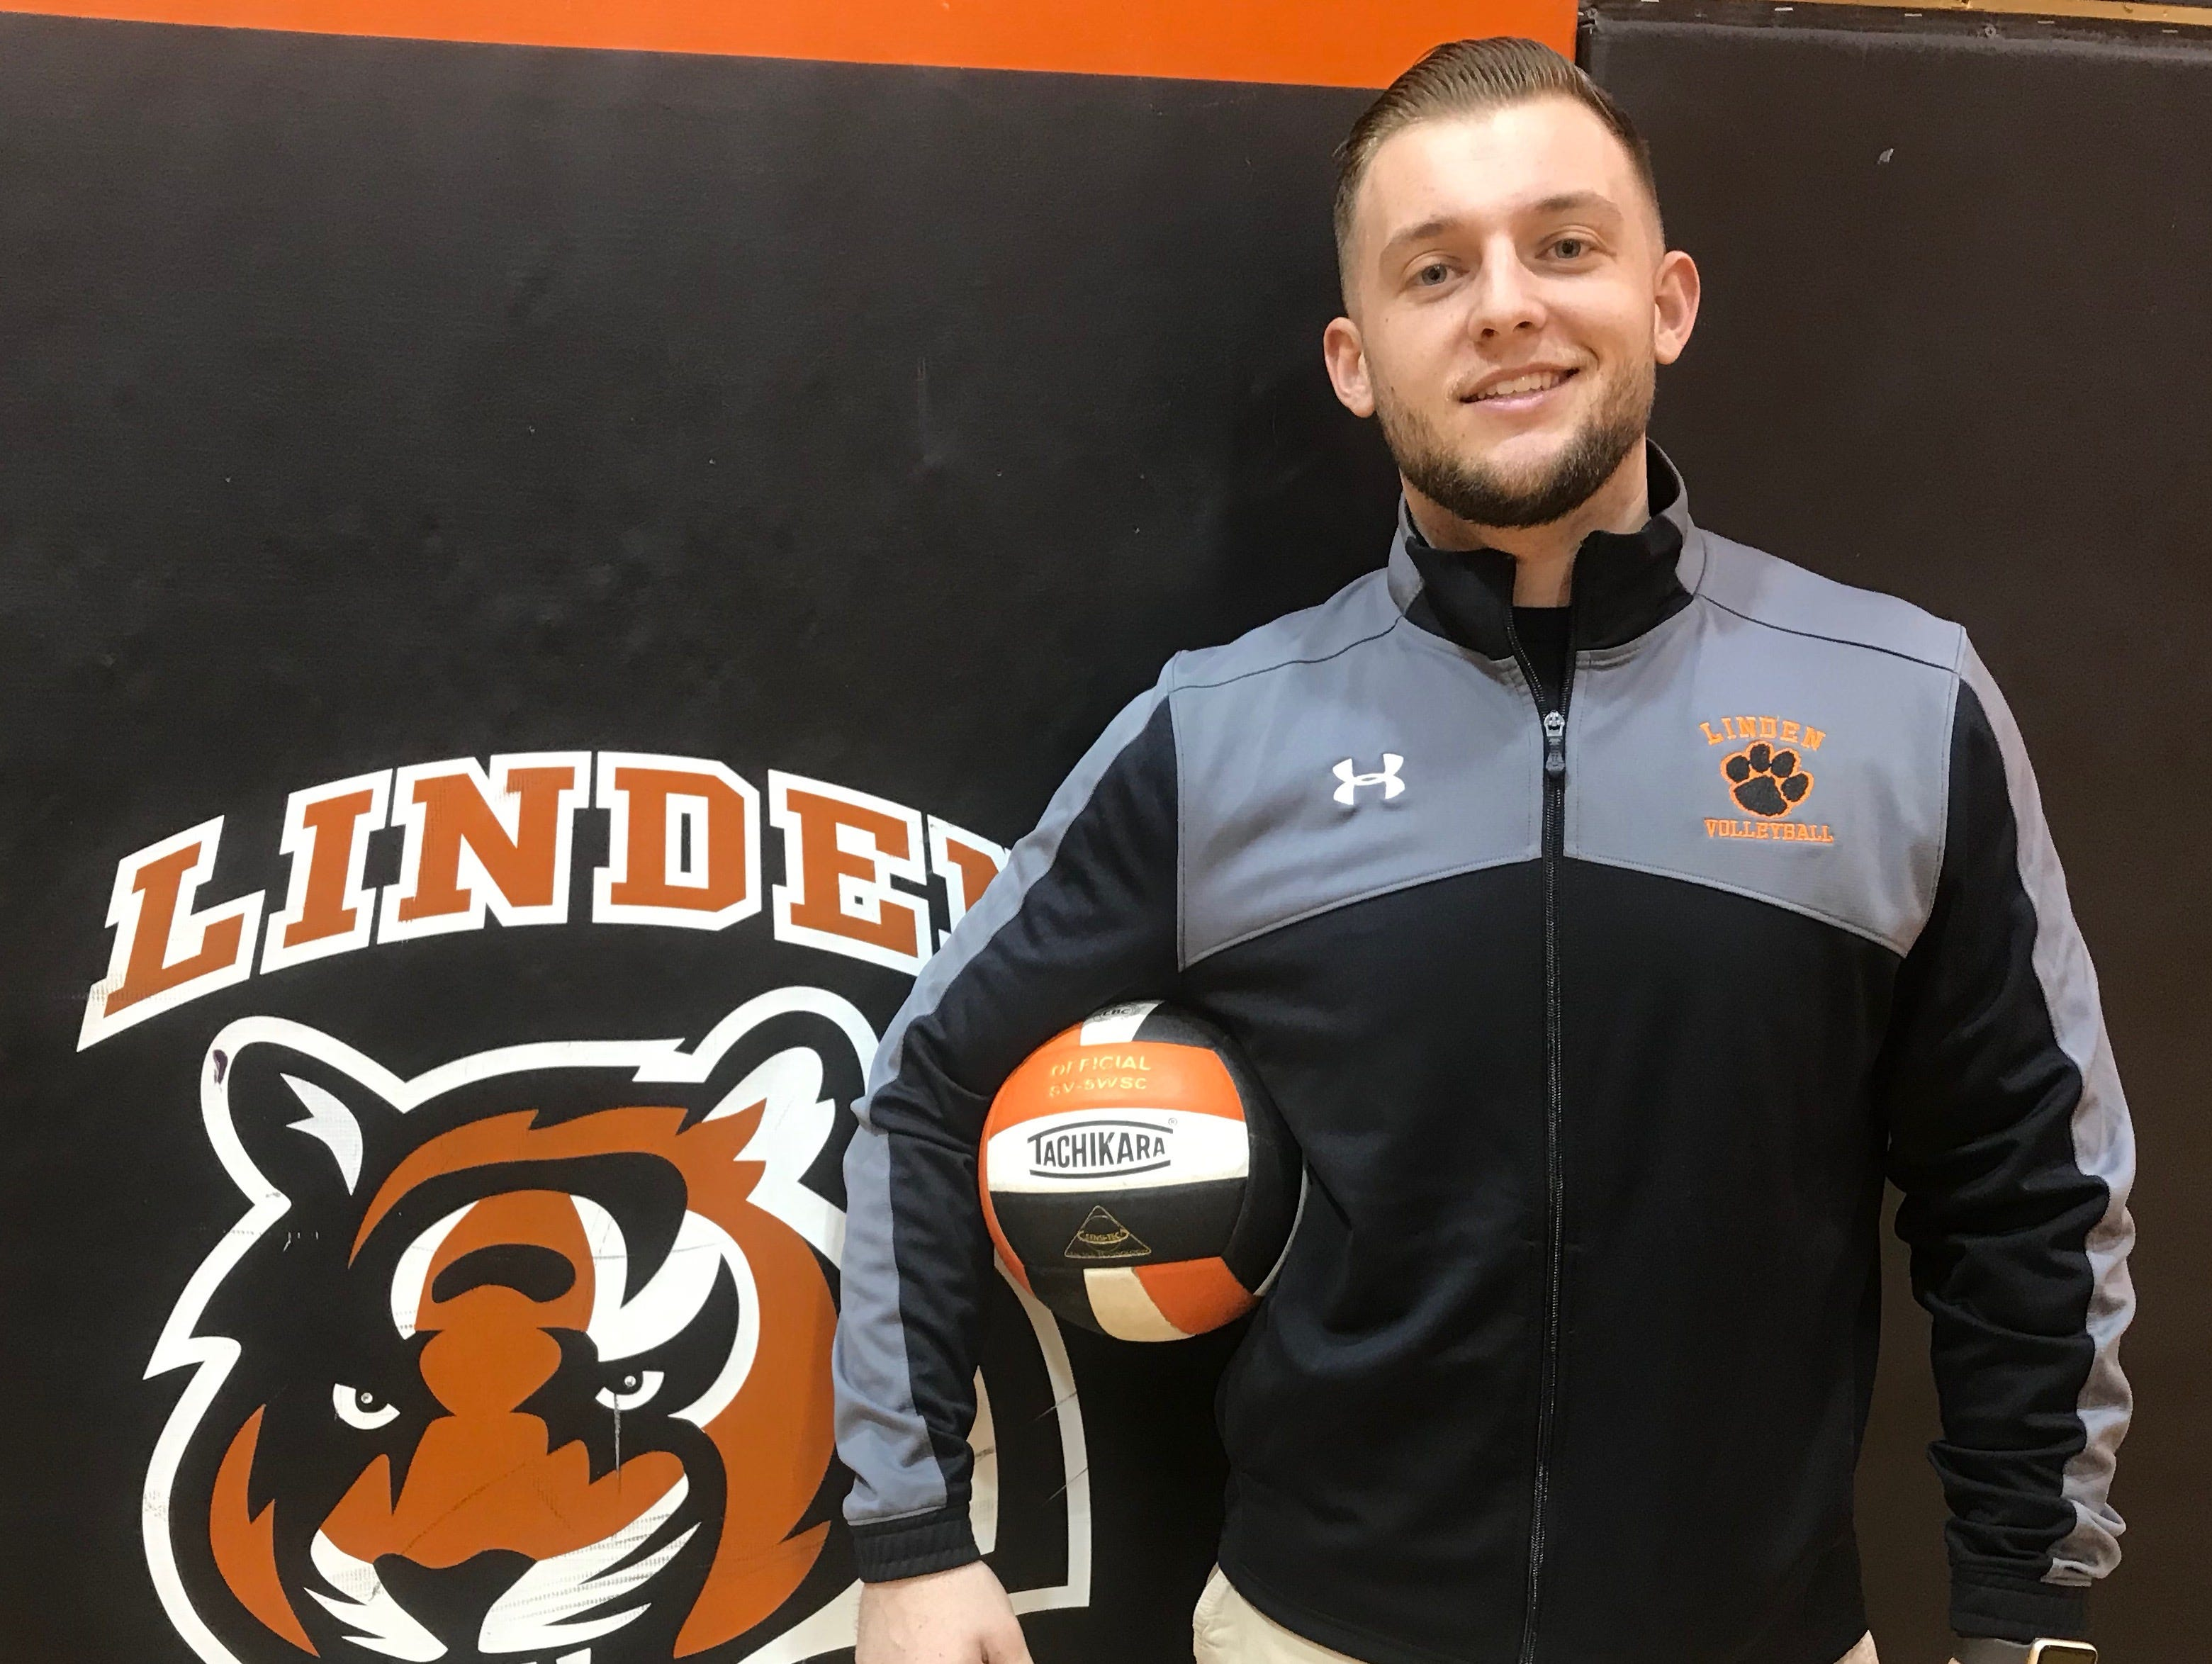 Jimmy Smith is the new head boys volleyball coach at Linden High School